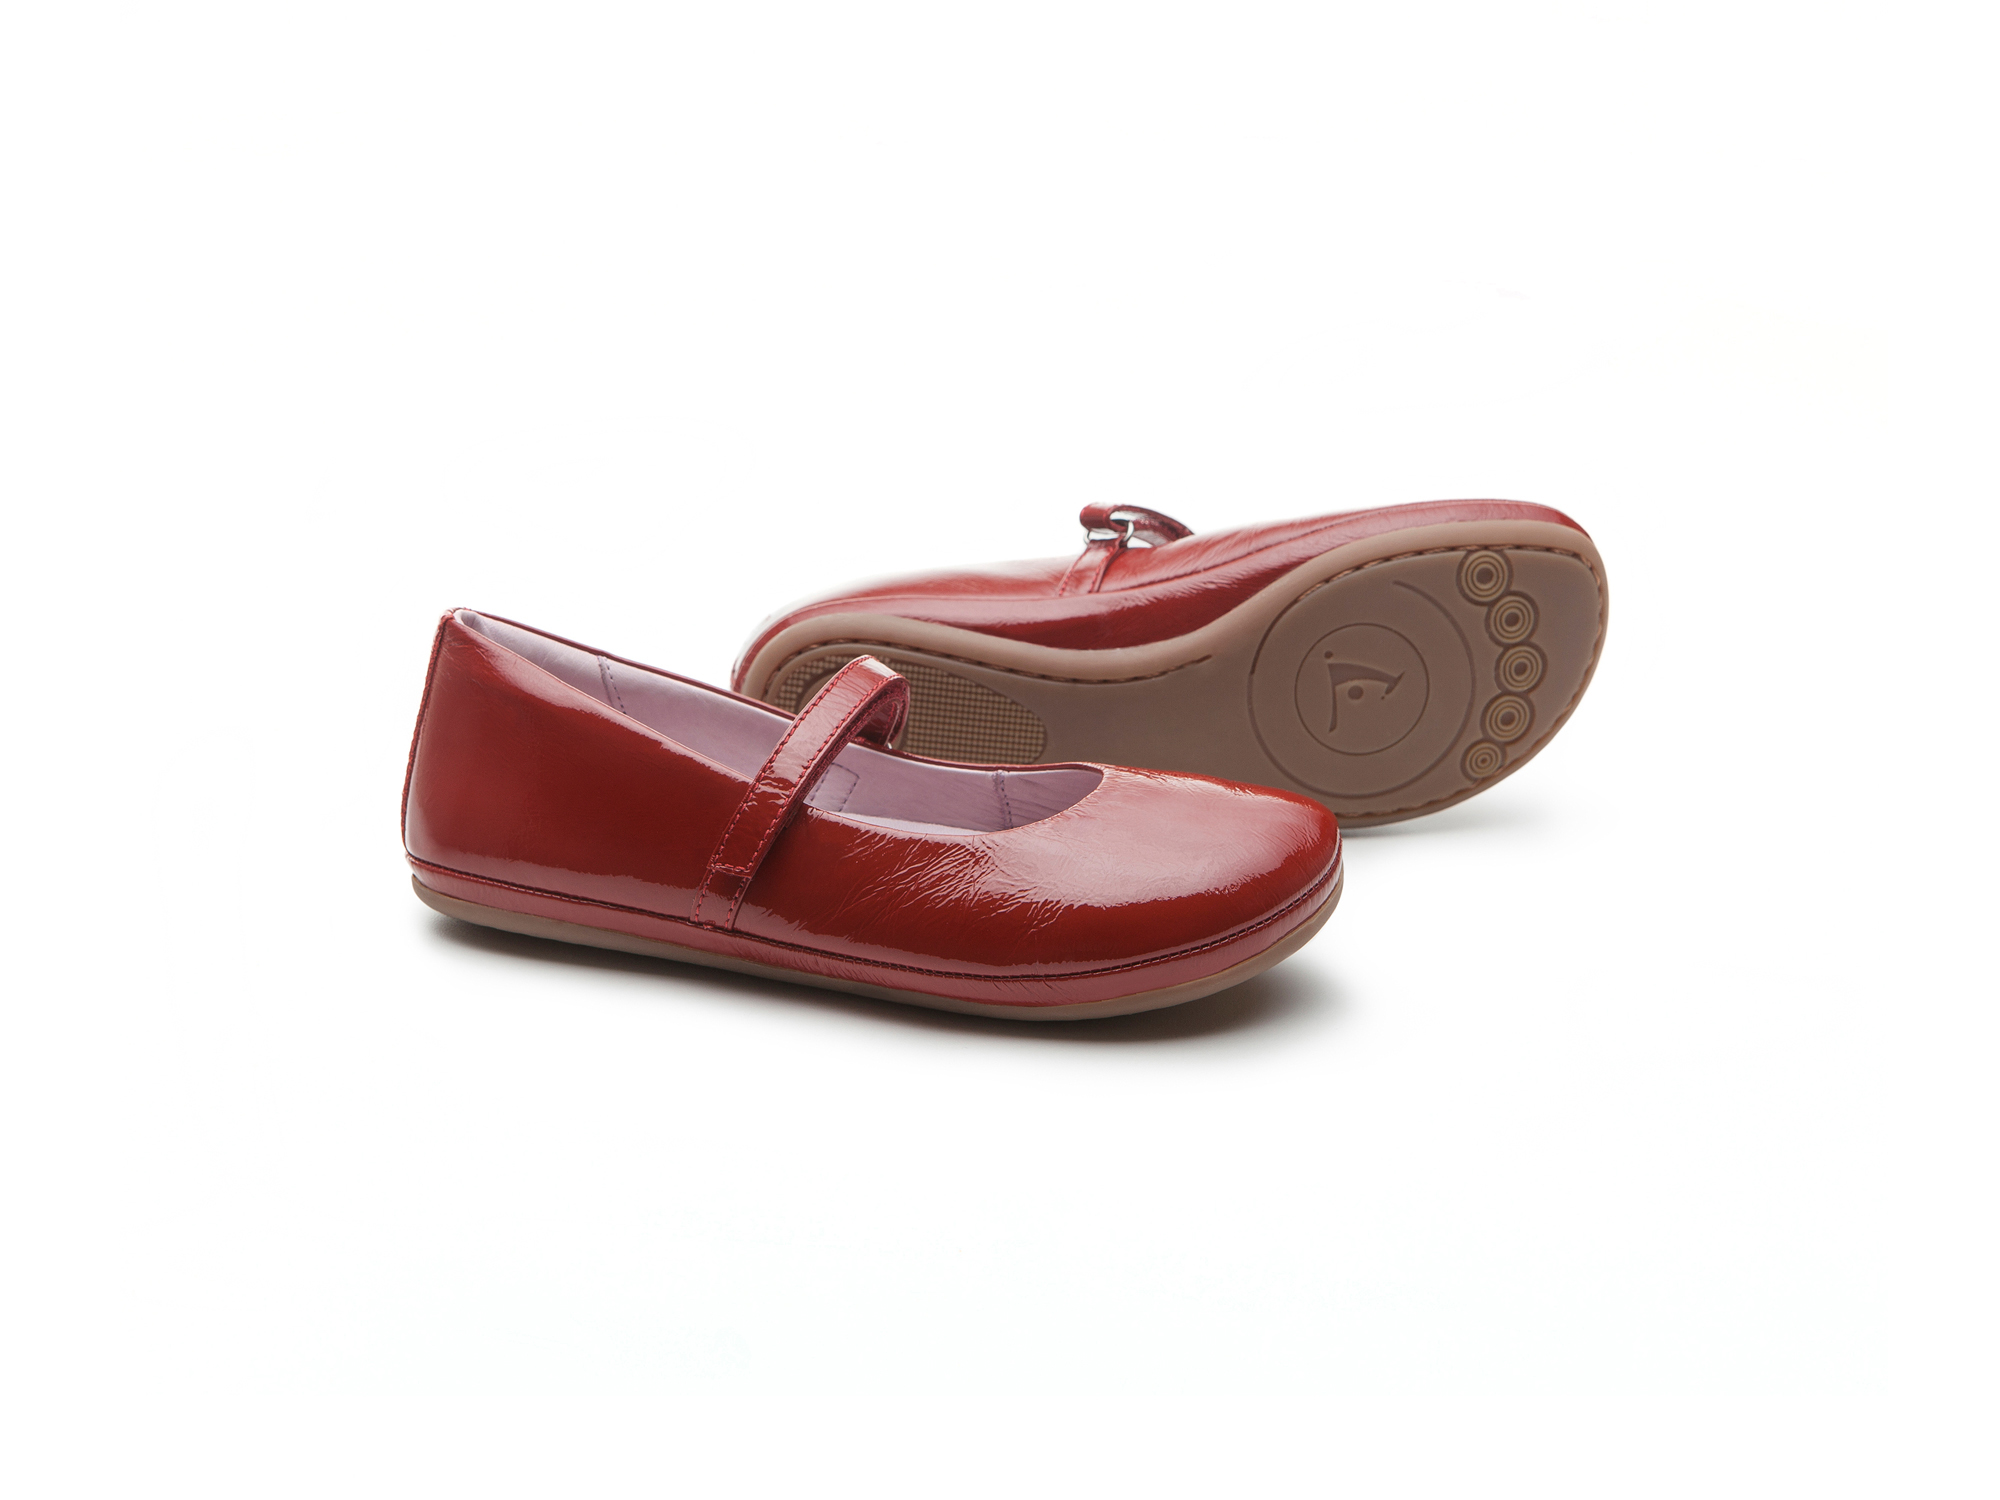 Boneca New Fizz Patent Red Junior 4 à 8 anos - 2